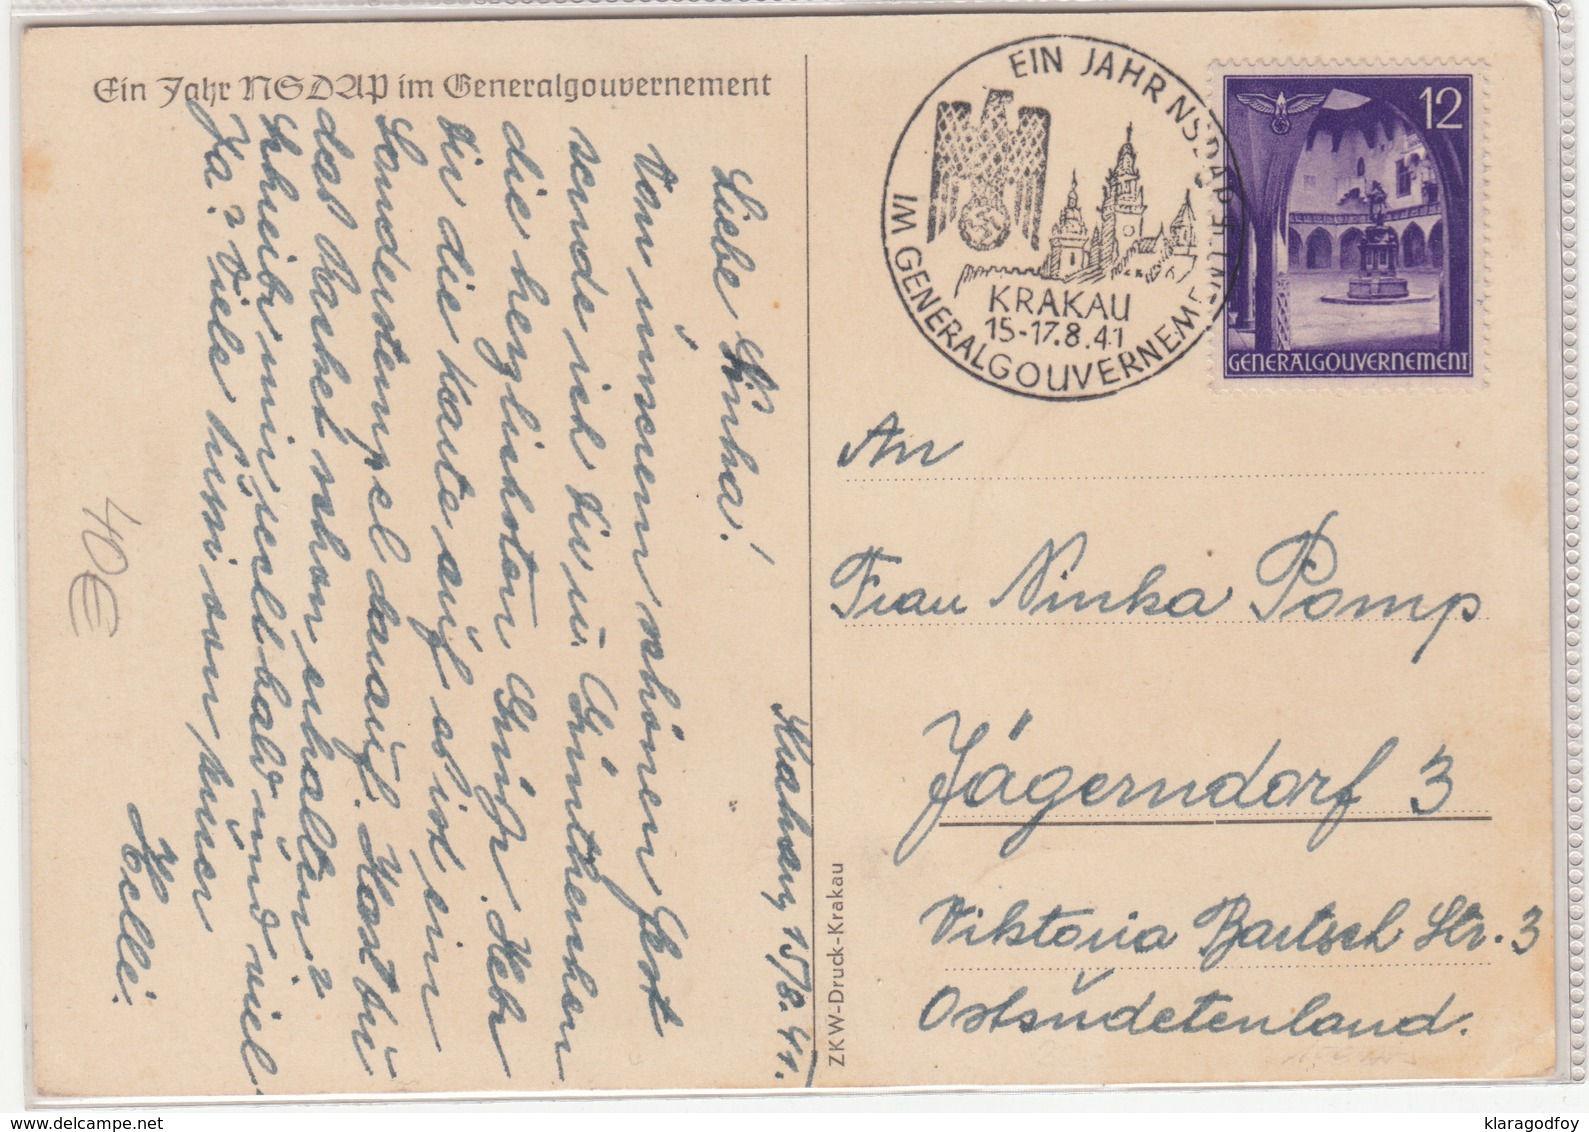 Krakau Day NSDAP In Generalgouvernement 1941 Special Postcard And Pmk Travelled B180410 - Sonstige